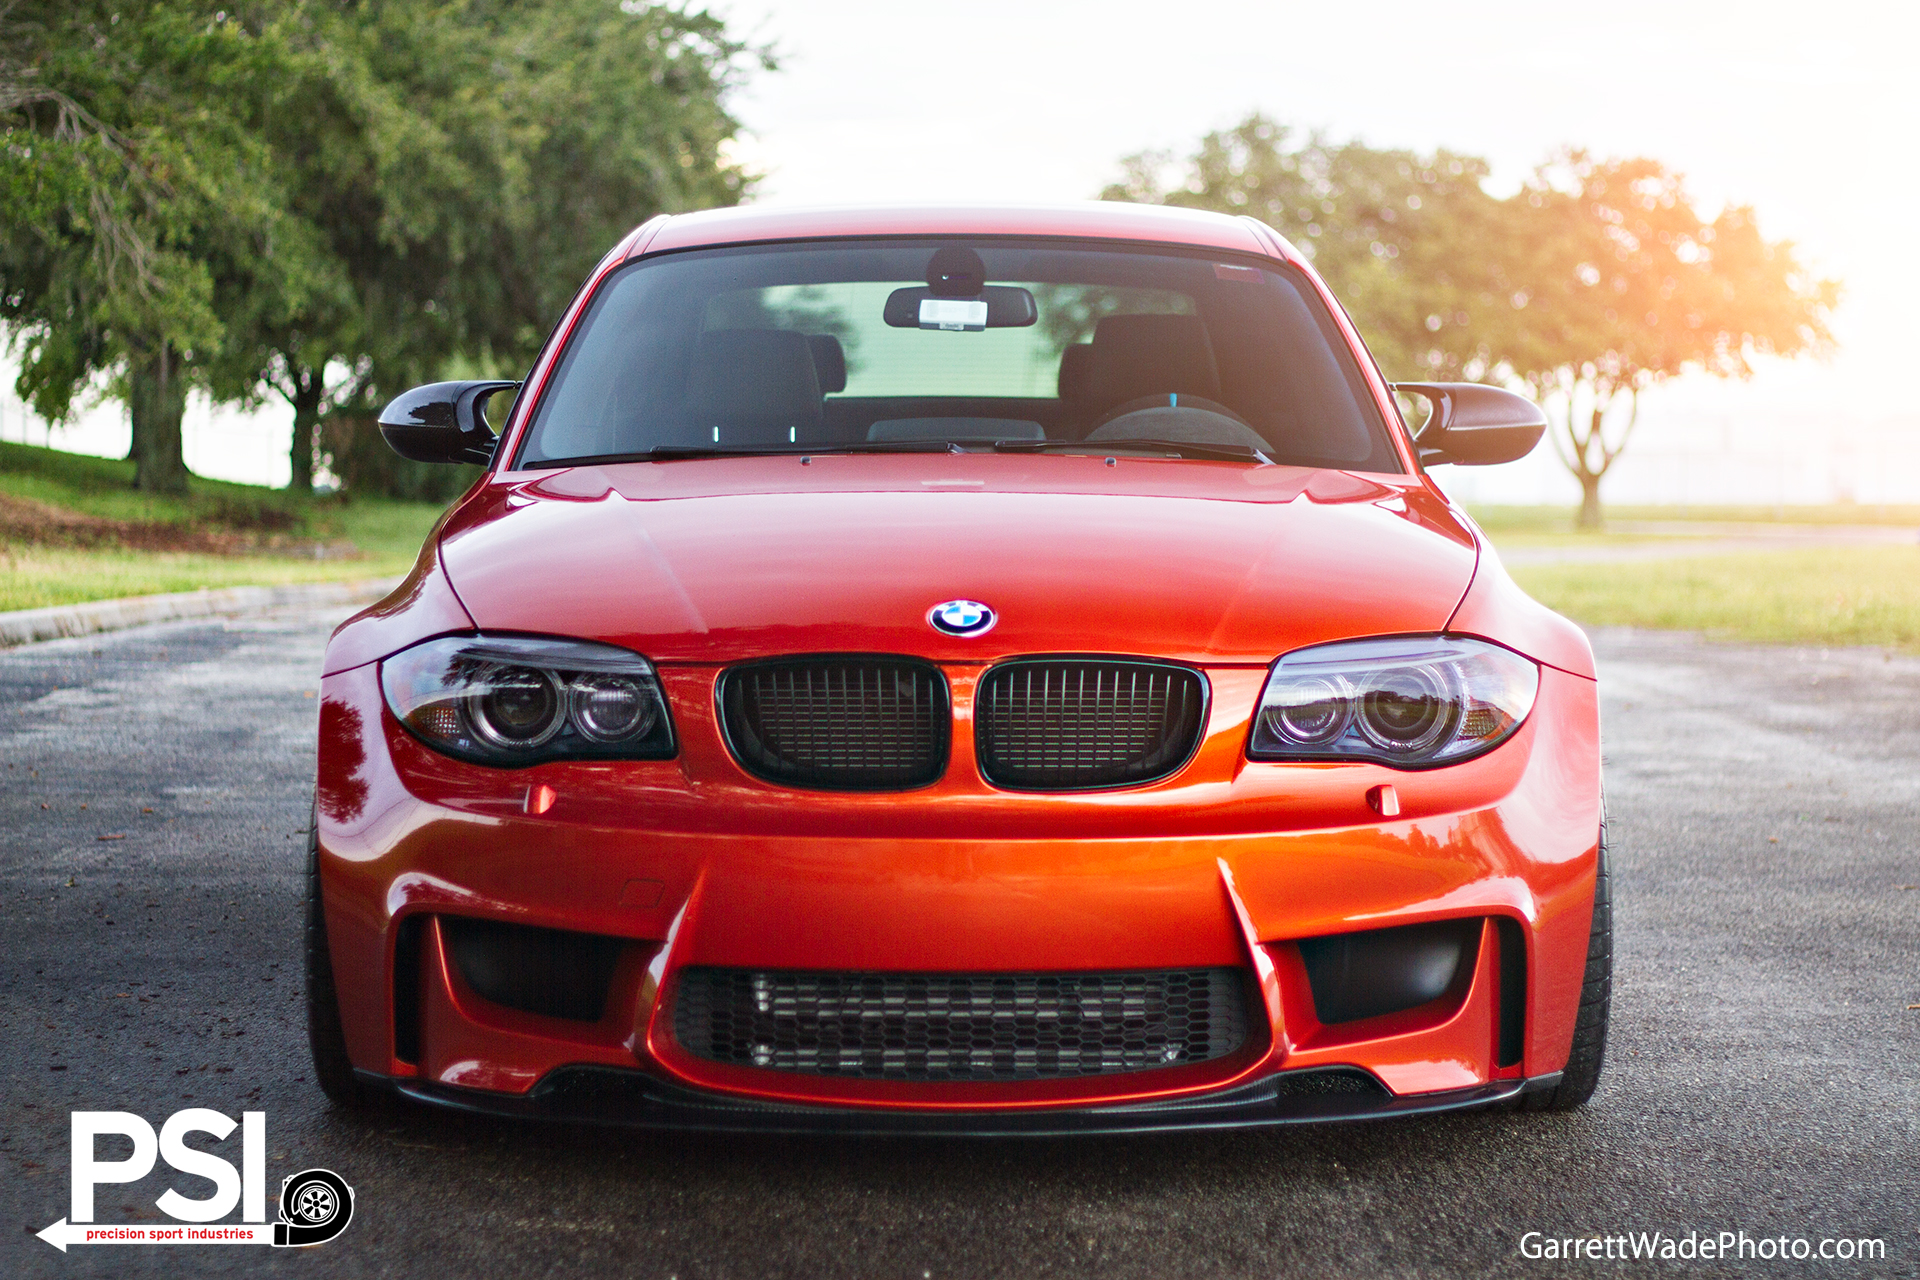 Bmw 1m Coupe By Precision Sport Industries Stiri Bmw Tuning Bmw Modificari Bmw Poze Bmw